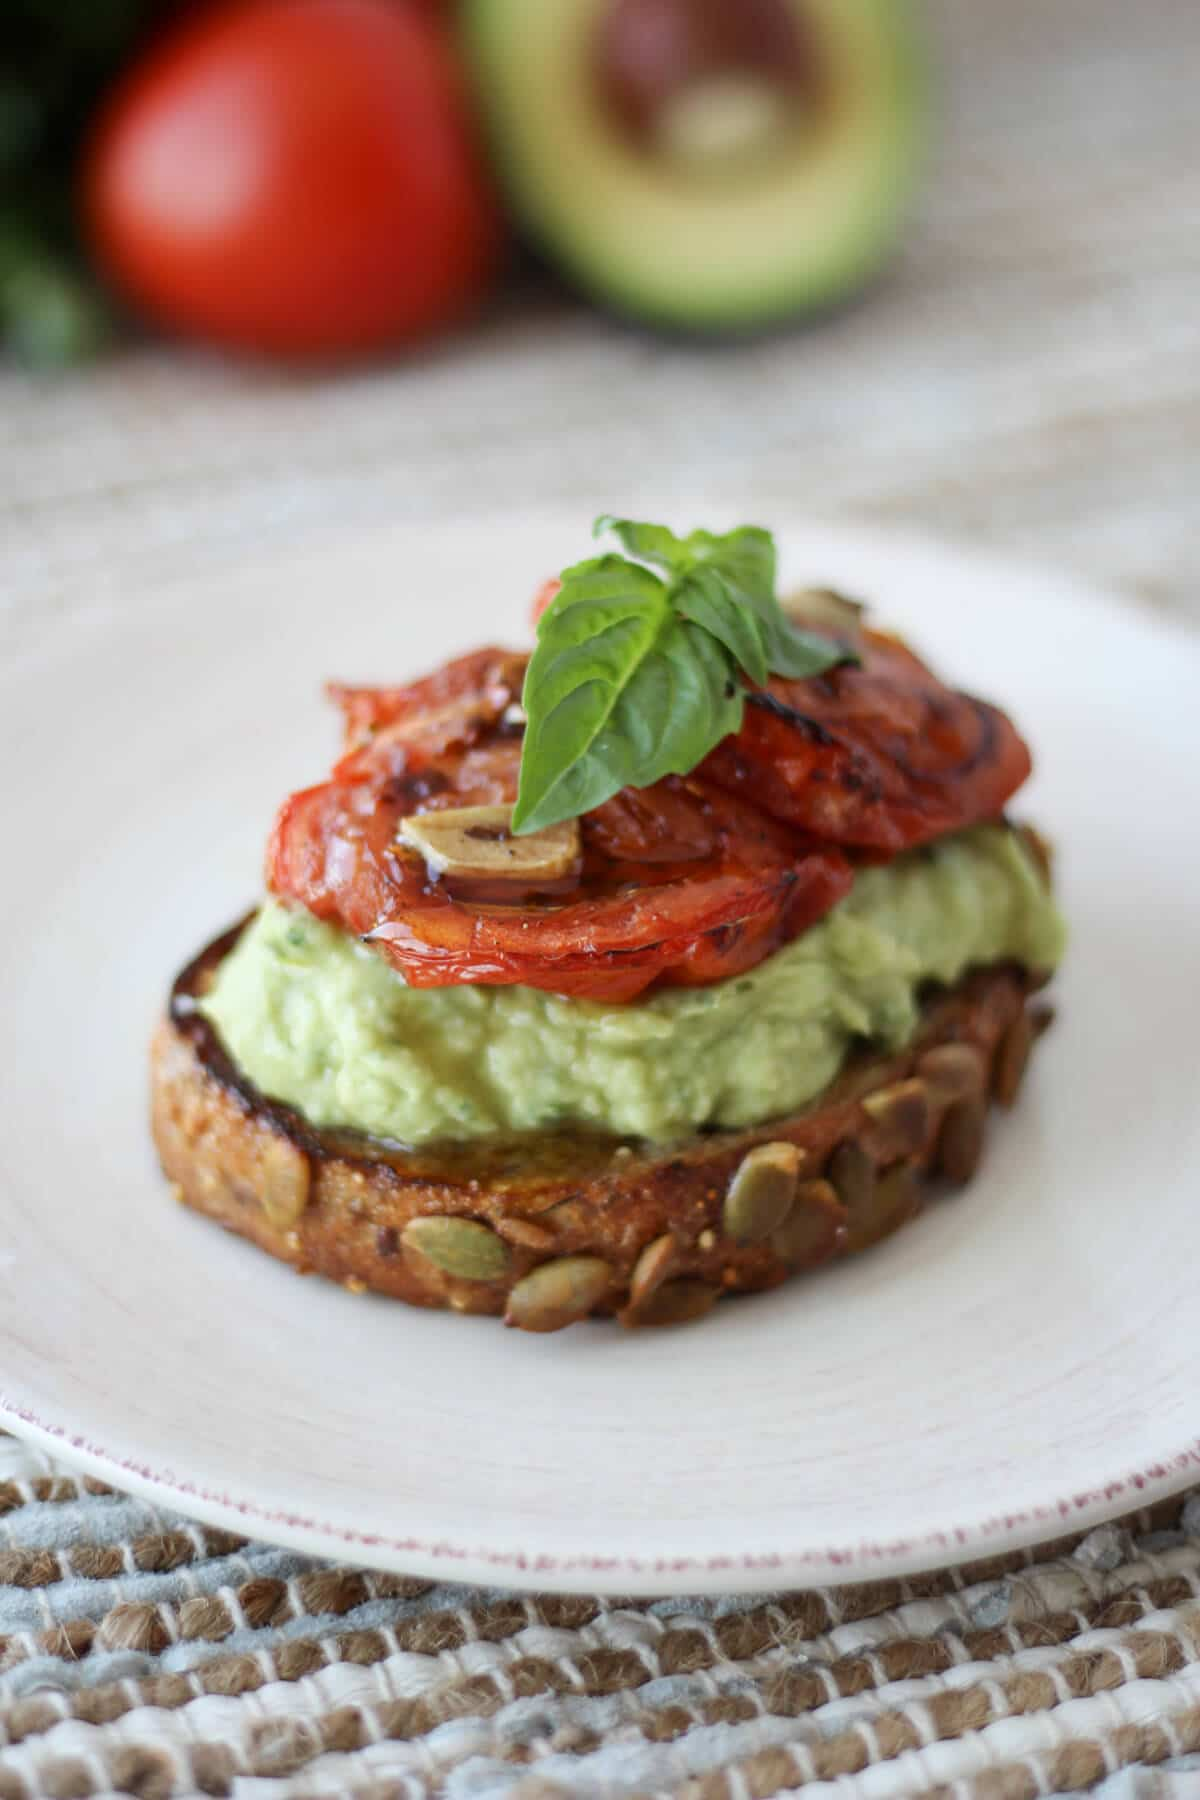 Avocado Toast with White Beans. A Great High Protein and Vegan Option For Breakfast. Takes only minutes to make for busy mornings and it's super easy. #vegan #protein